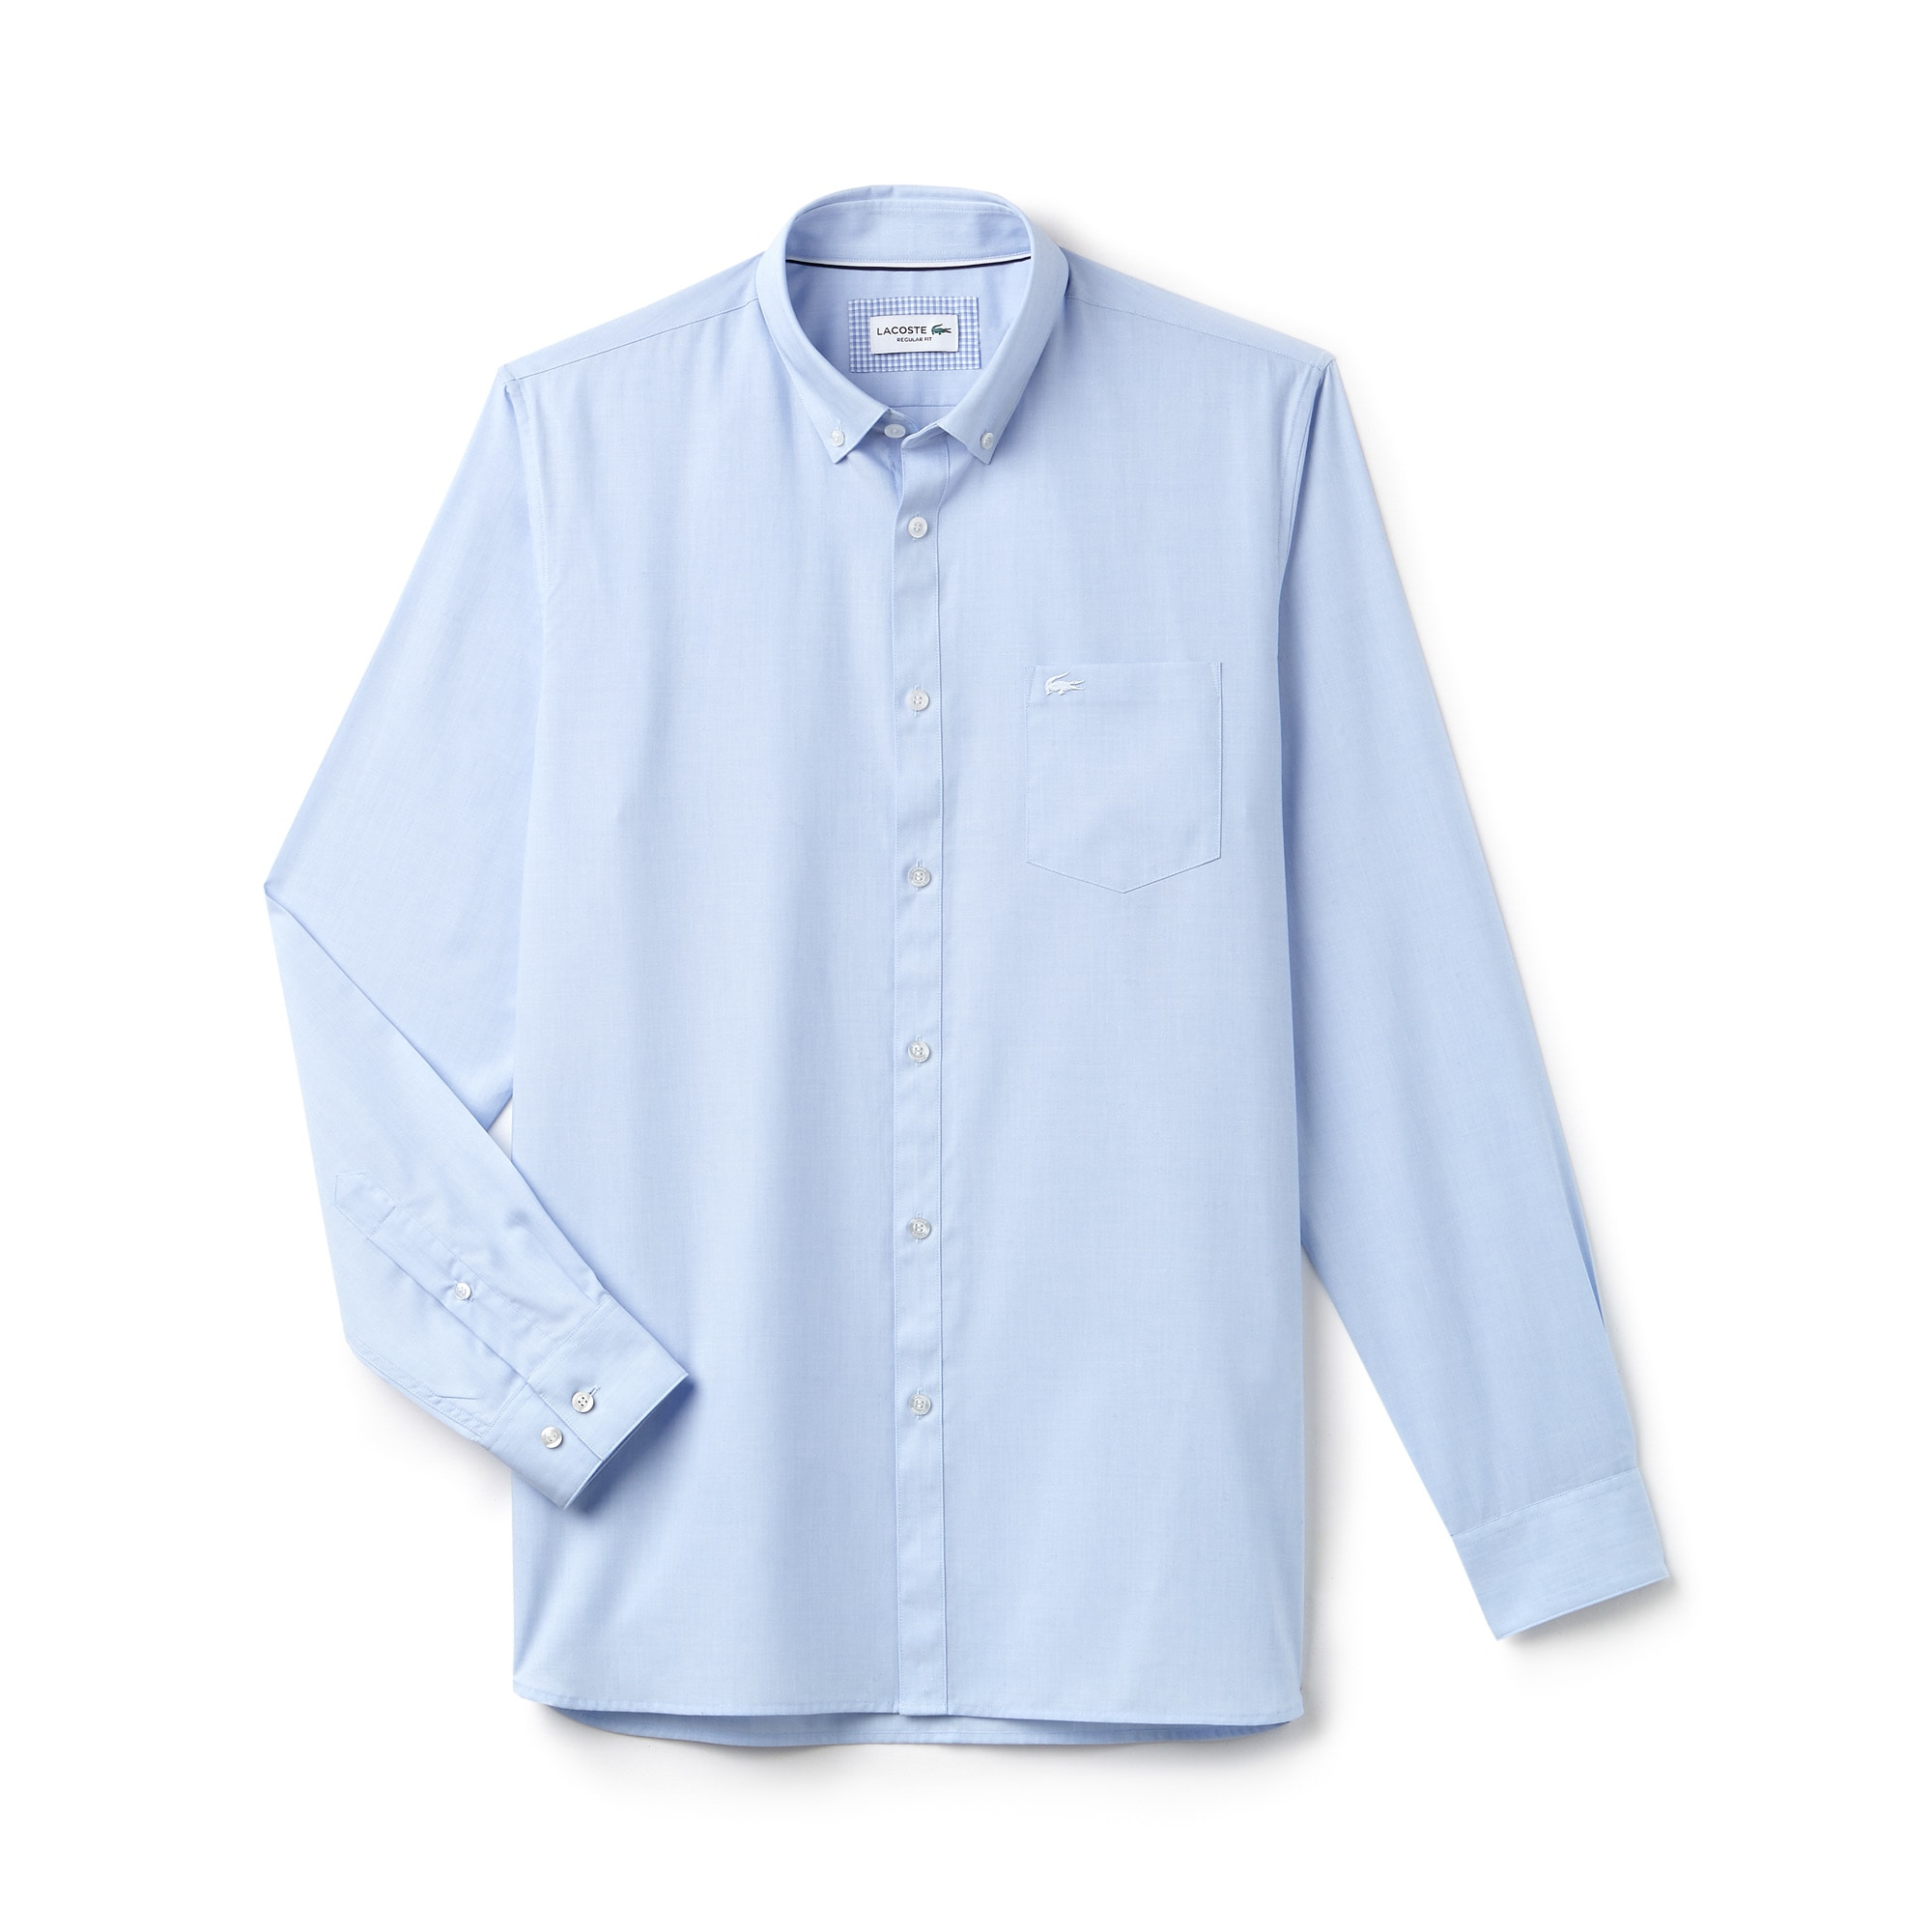 Men's Regular Fit Salt-and-Pepper Cotton Shirt